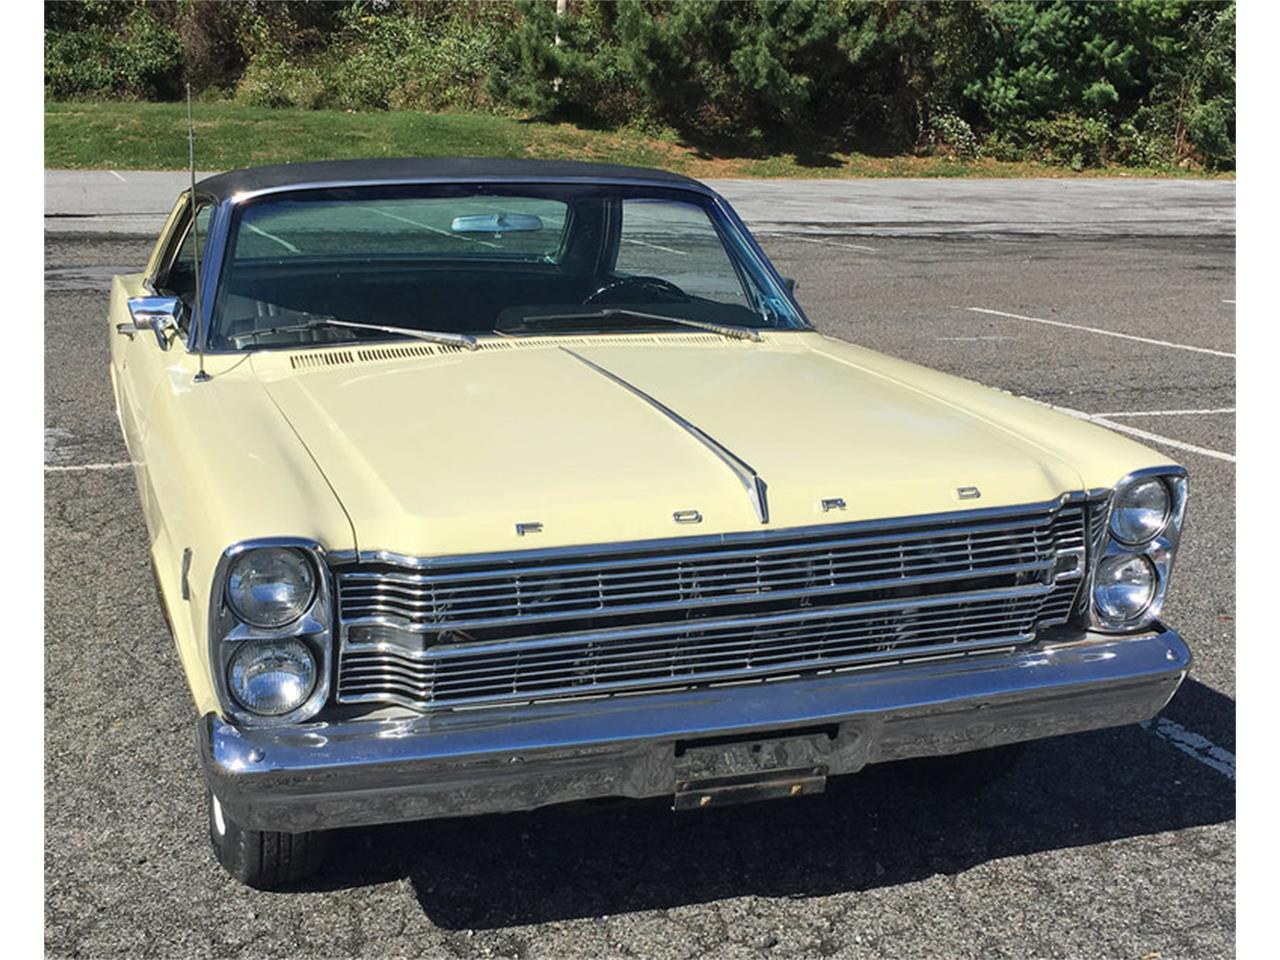 Large Picture of '66 Galaxie 500 located in West Chester Pennsylvania - $12,500.00 - MAFO